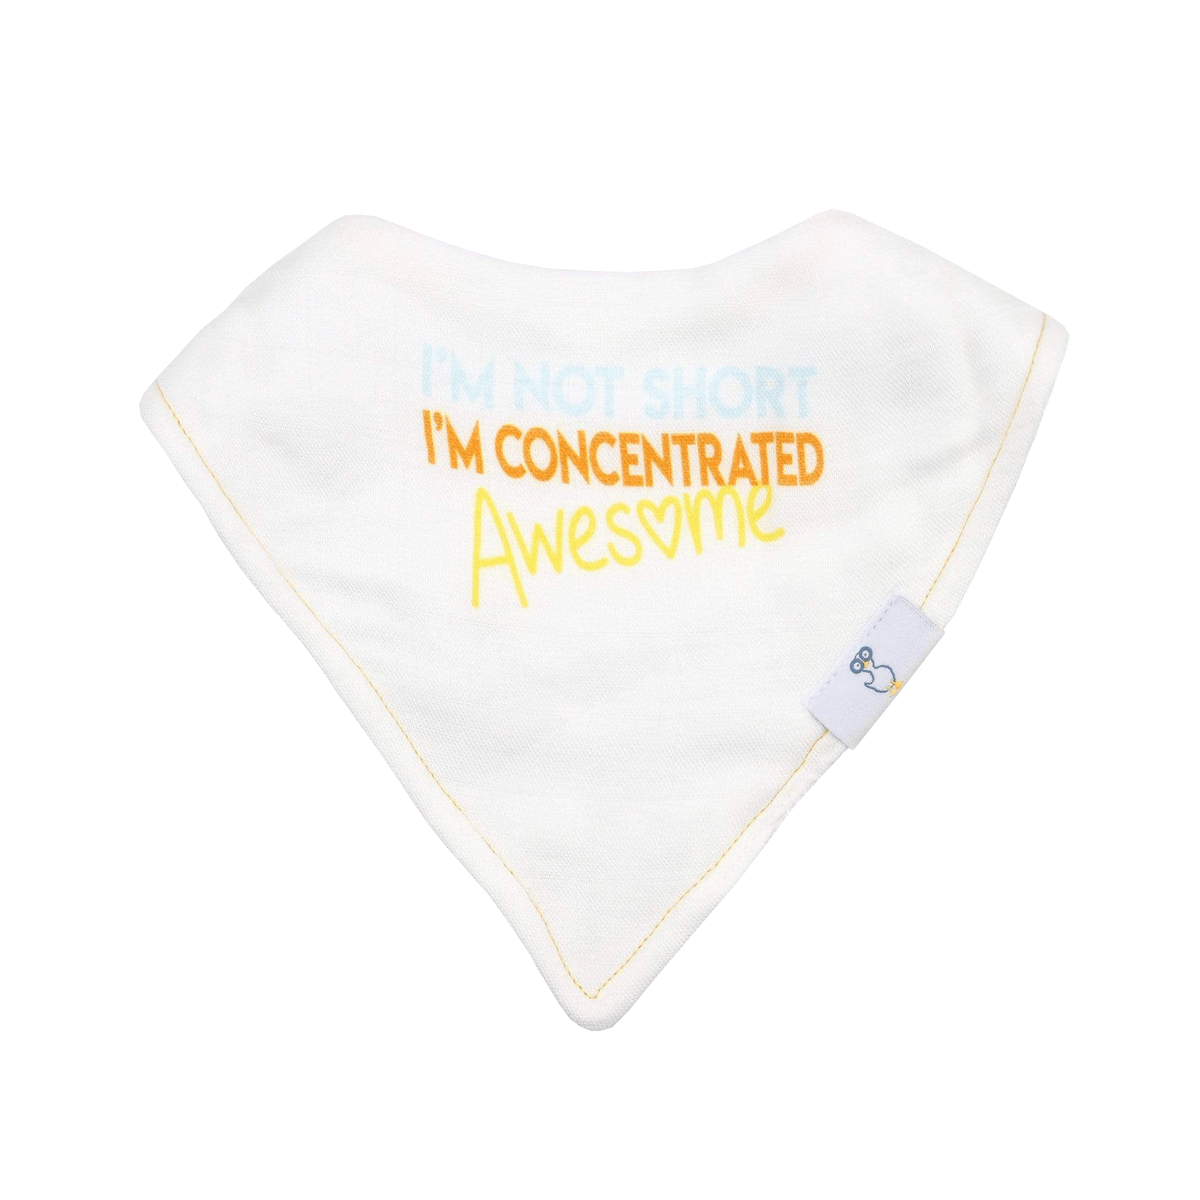 2 PK Muslin & Terry Cloth Bib Set Awesome/Diamonds - GooseWaddle